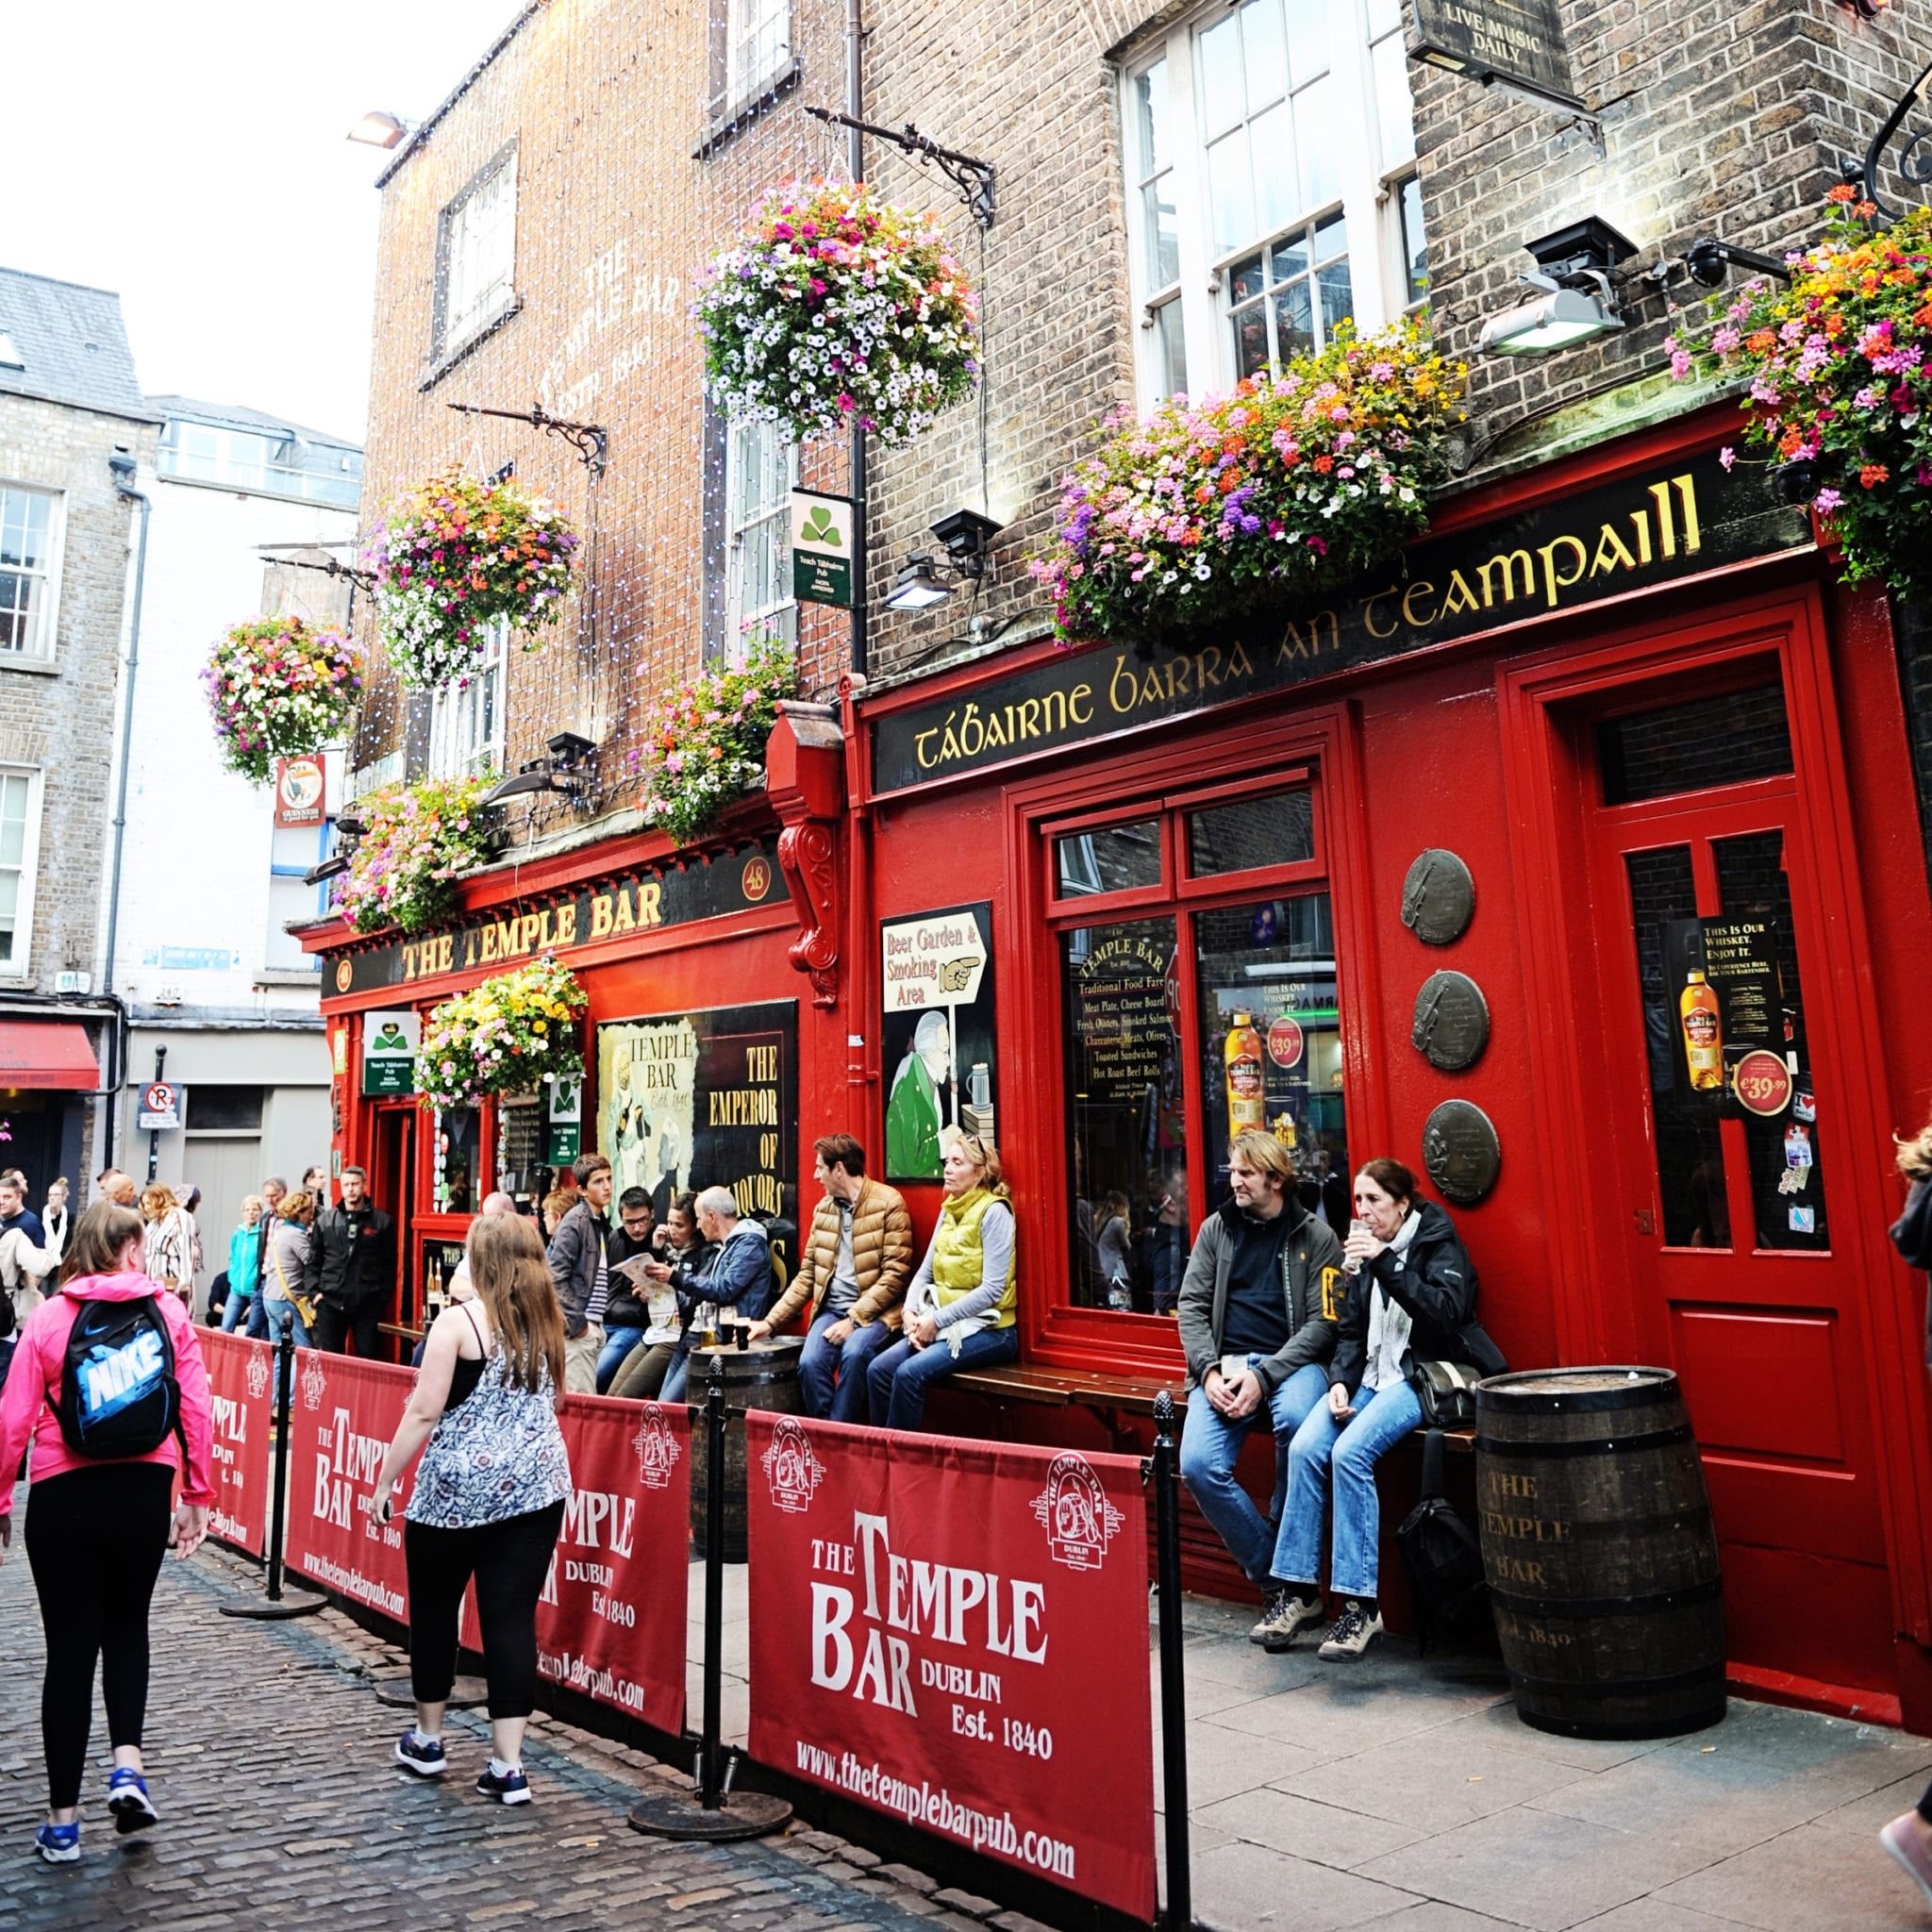 dublin ireland travel guide